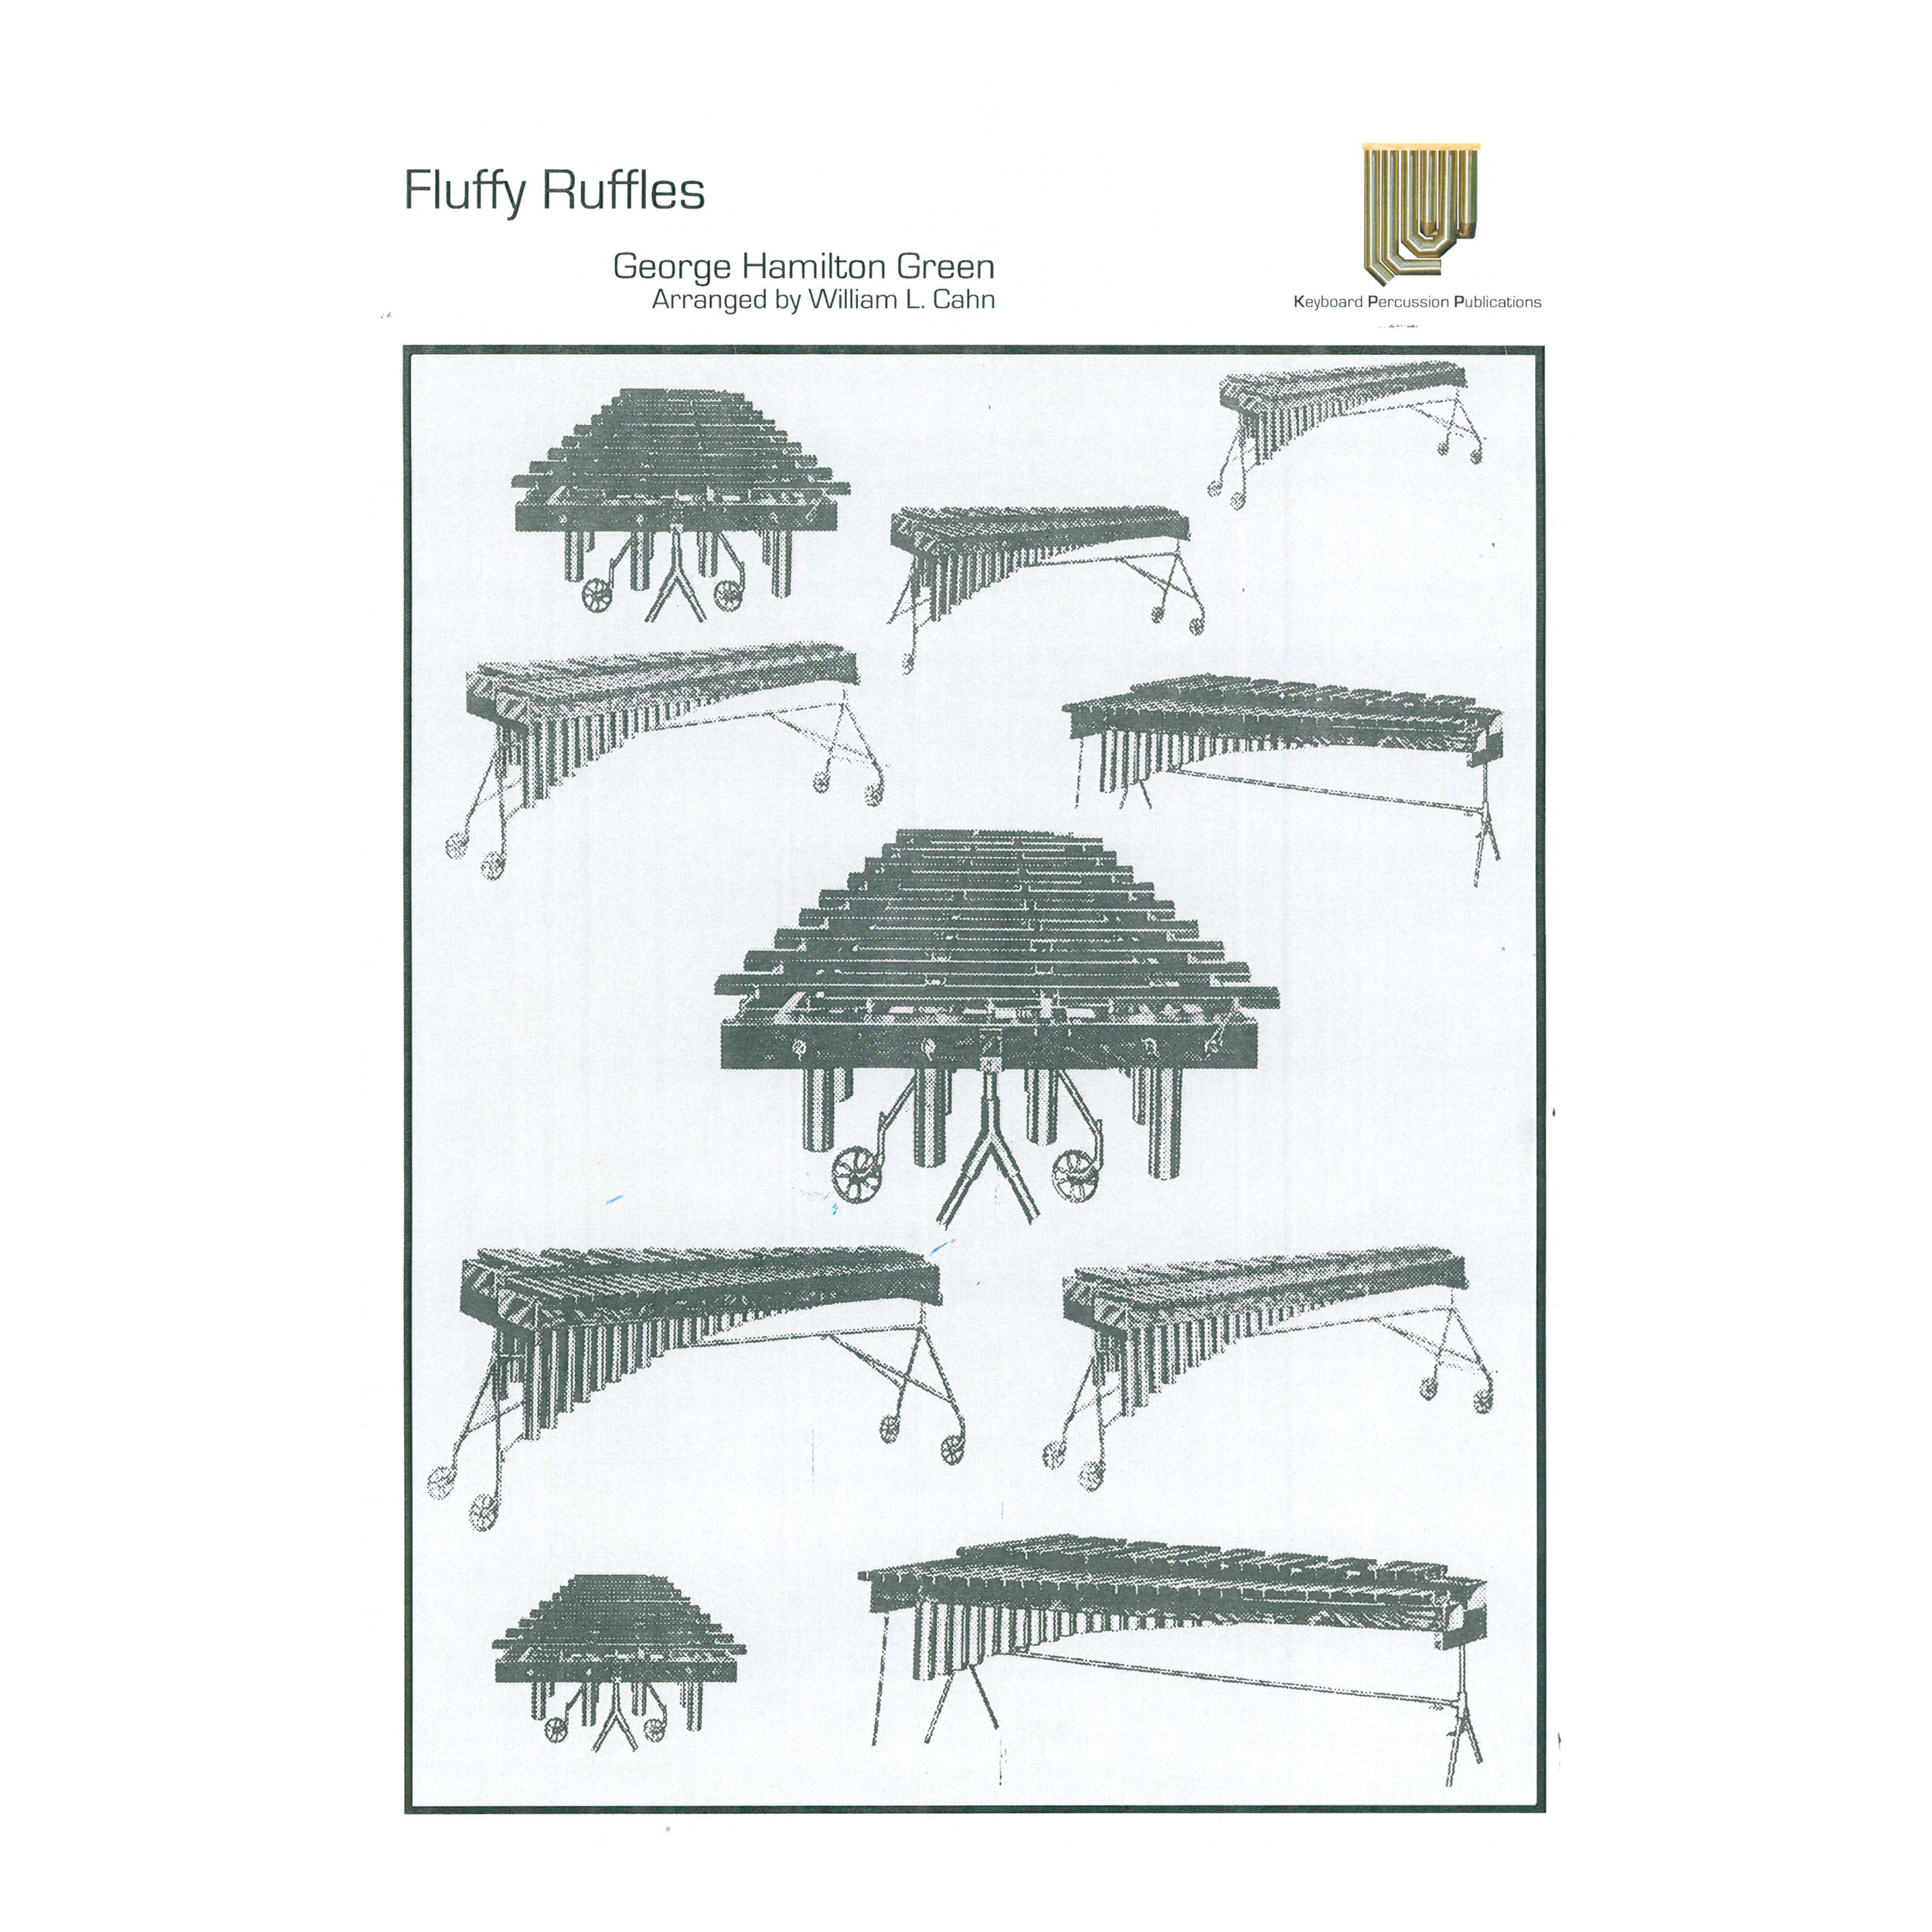 Fluffy Ruffles by George Hamilton Green arr. Bob Becker